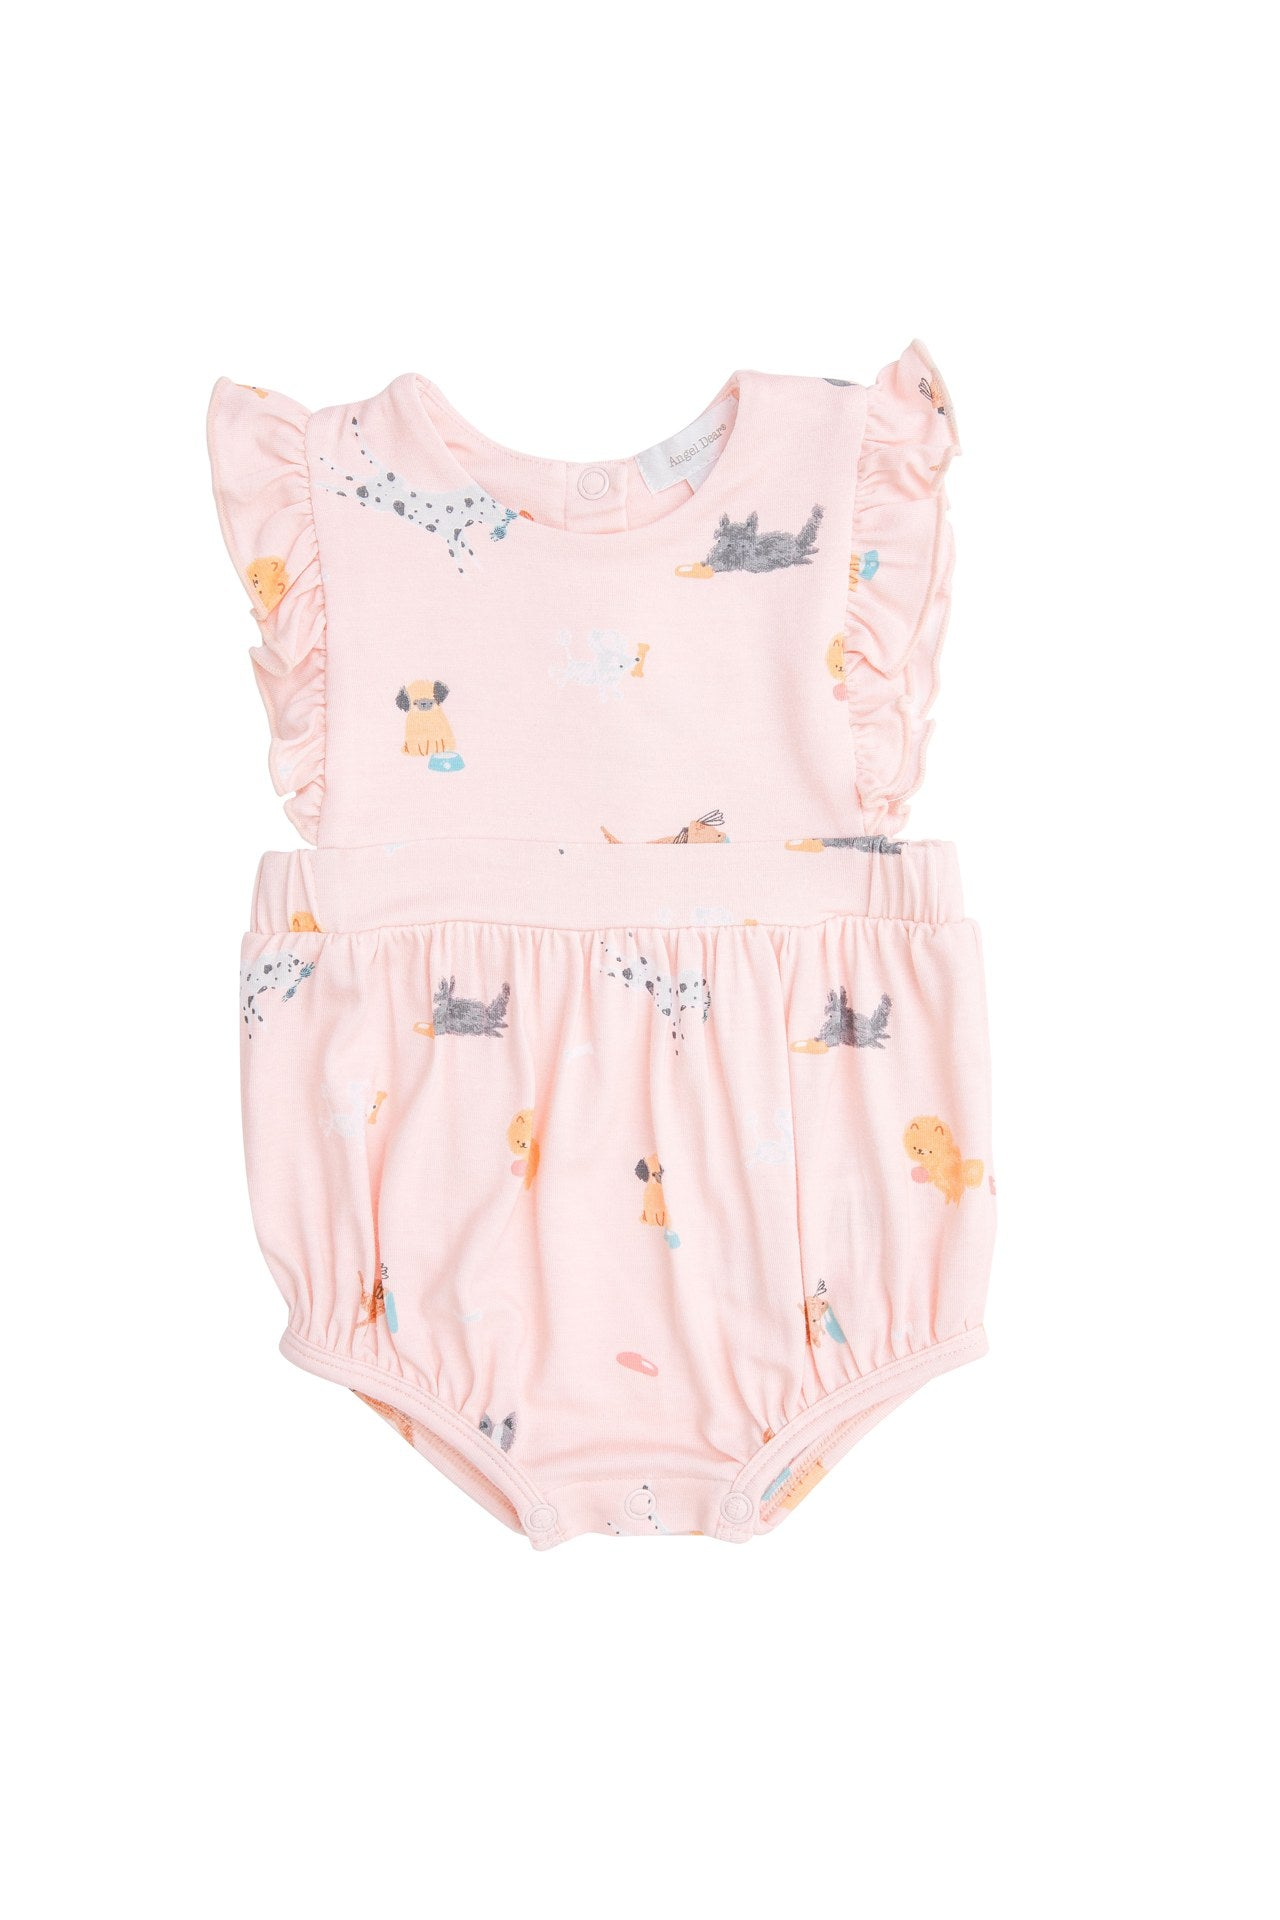 Puppy Play Ruffle Sunsuit Pink